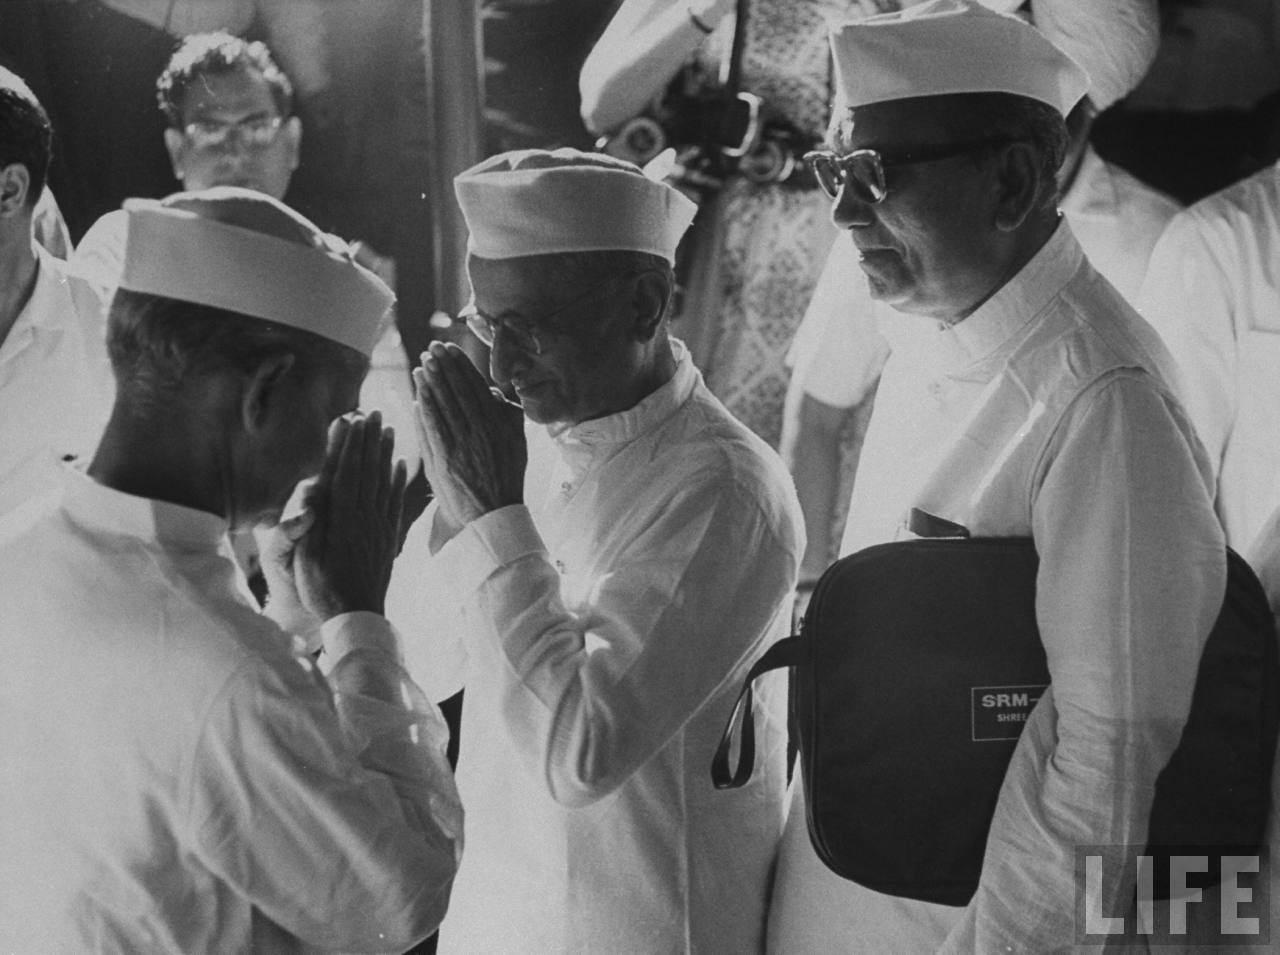 Face to Face -  Lal Bahadur Shastri (Left) and Morarji Desai (Center) - June 1964